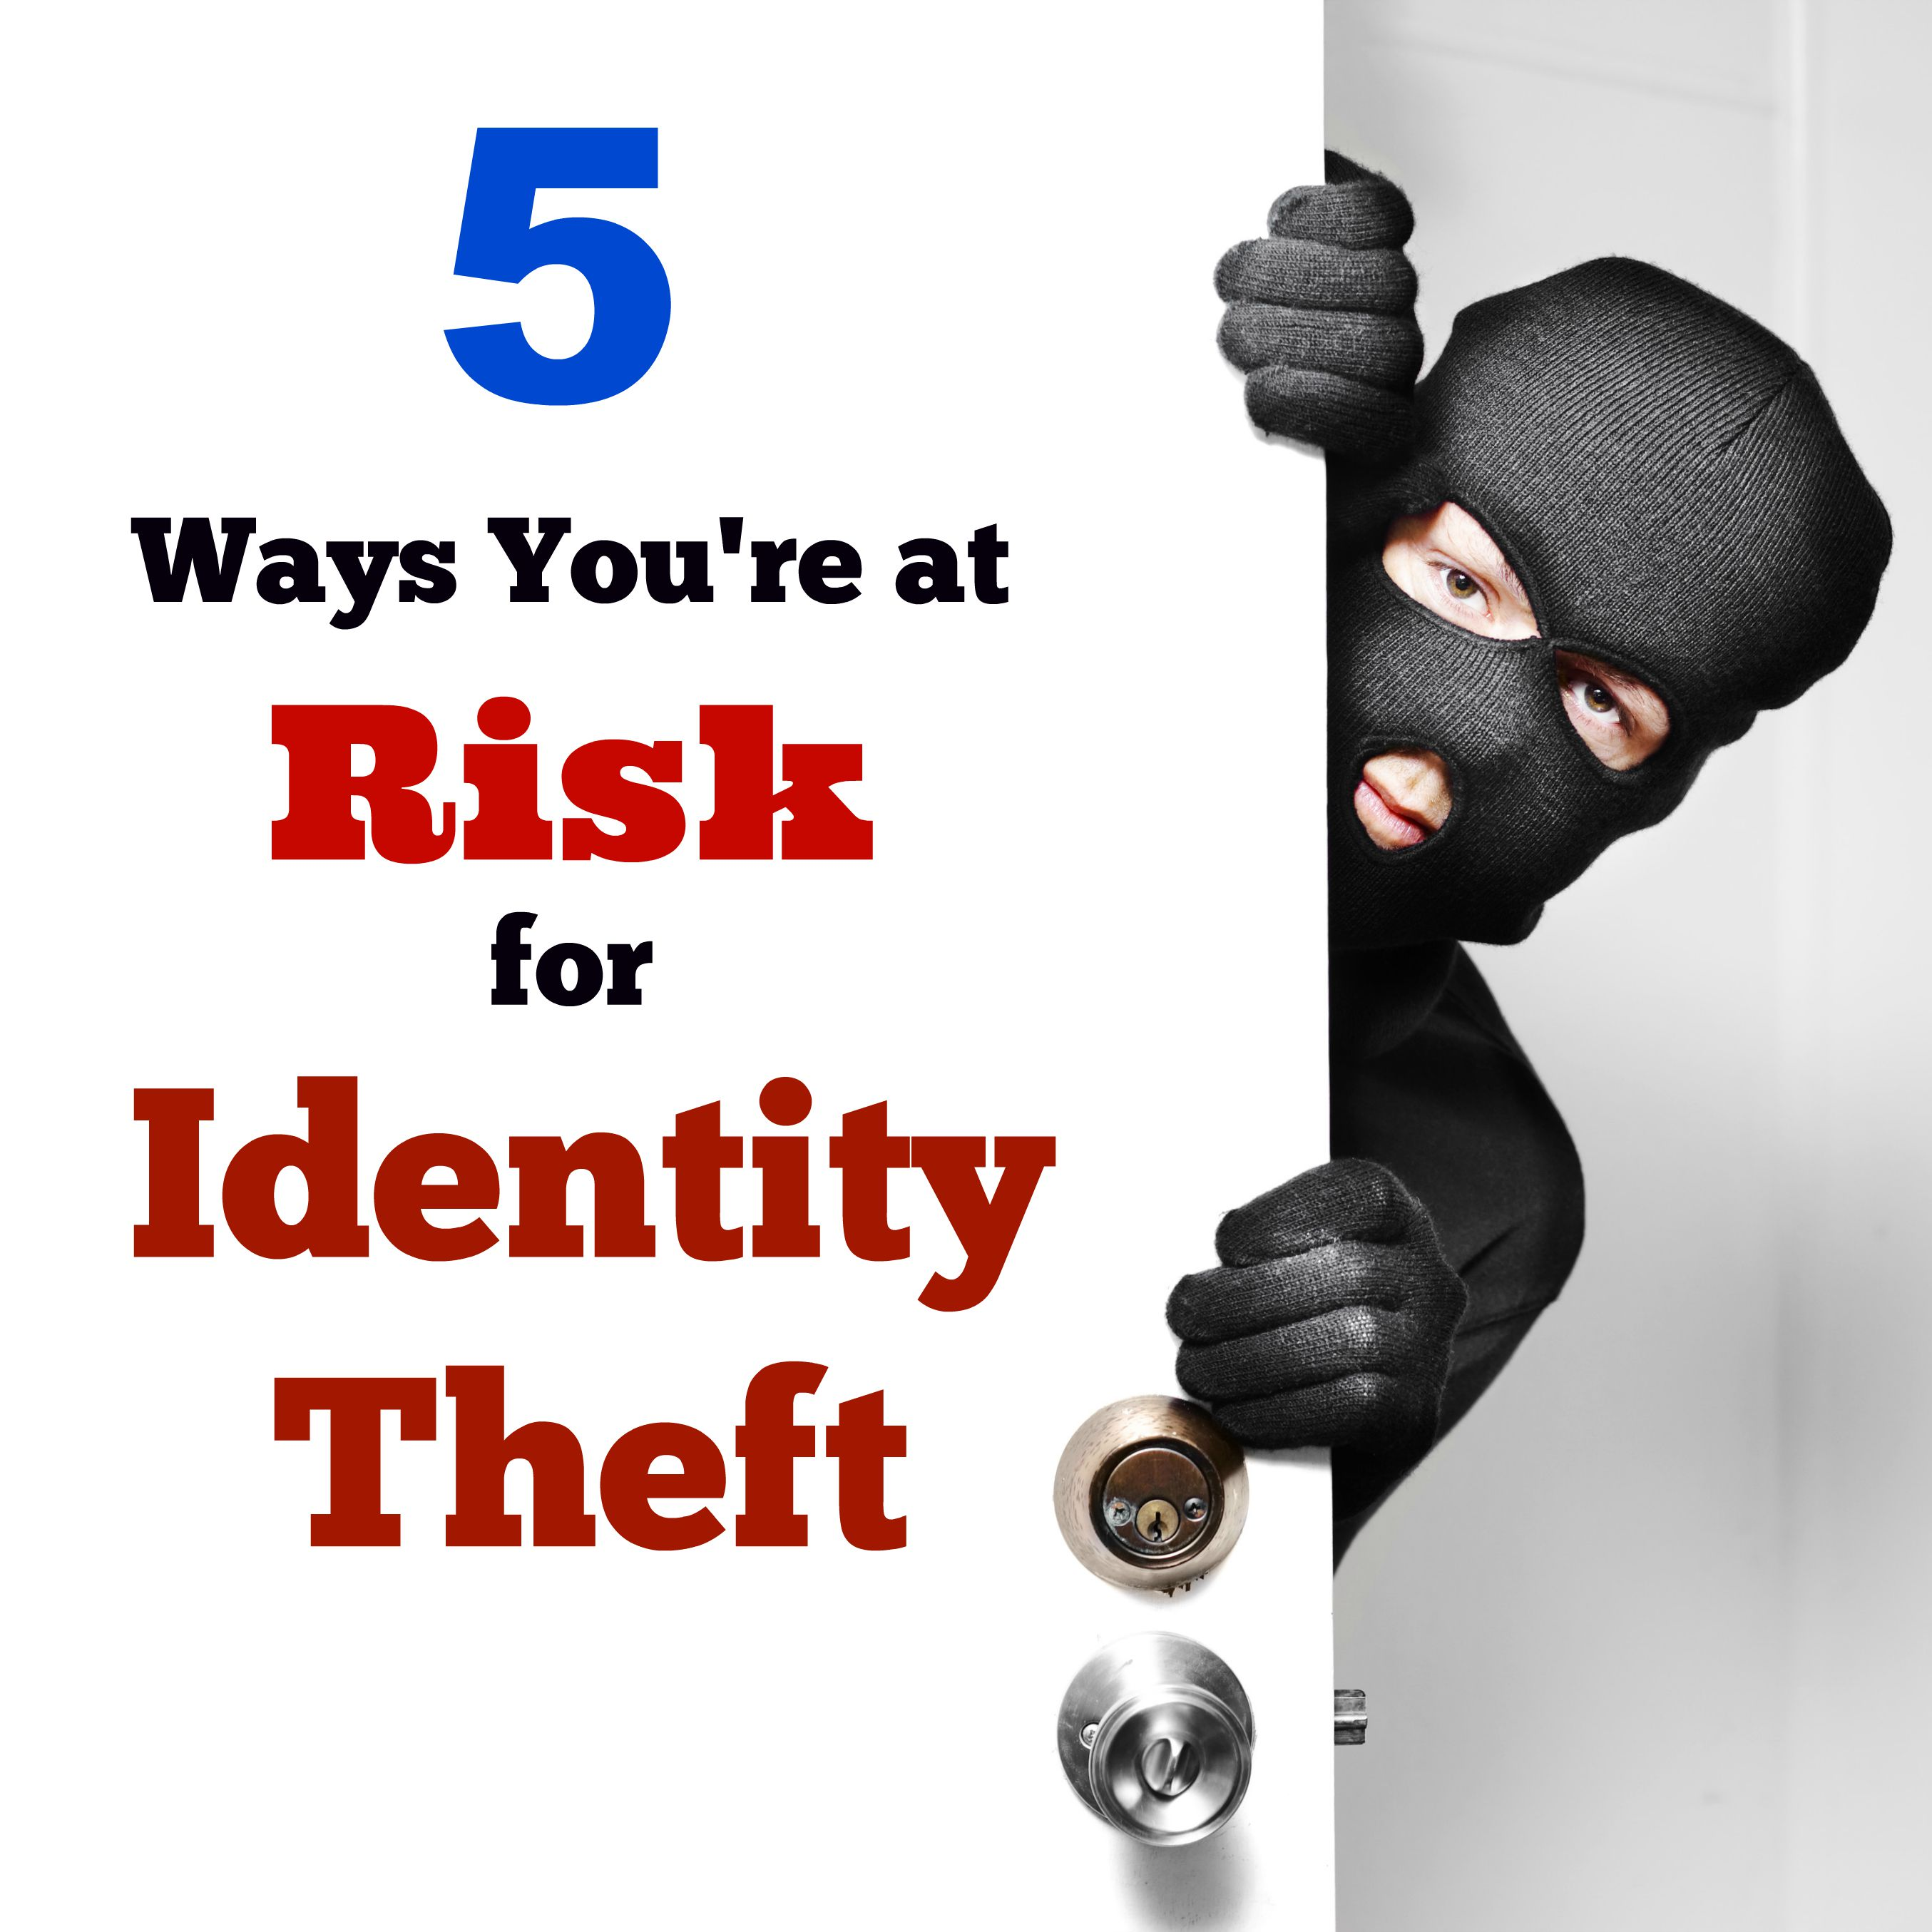 identity theft a fast growing crime in Report on identity theft in the county of the largest-scale and fastest growing crimes in the county of los angeles this harmful and fast-growing crime.